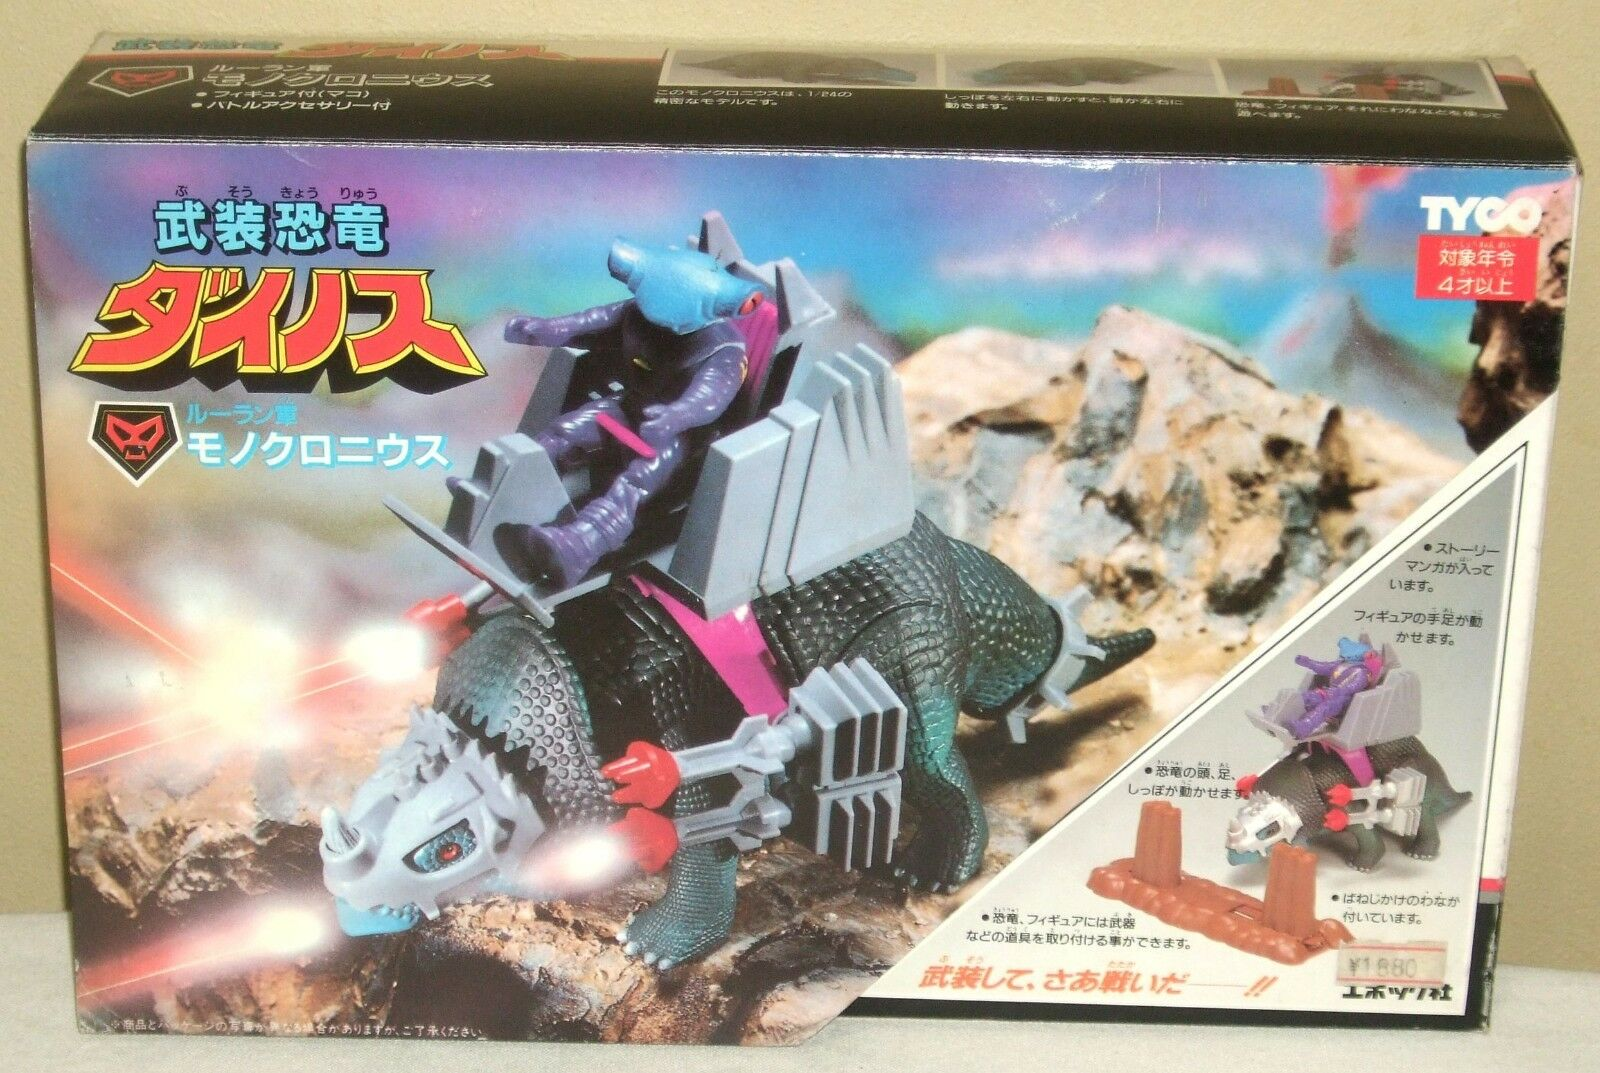 Dino Riders Epoch Monoclonius Rulon 1/24 scale w/Mako Figure Dolls Epoch Riders 1988 Tyco 600438